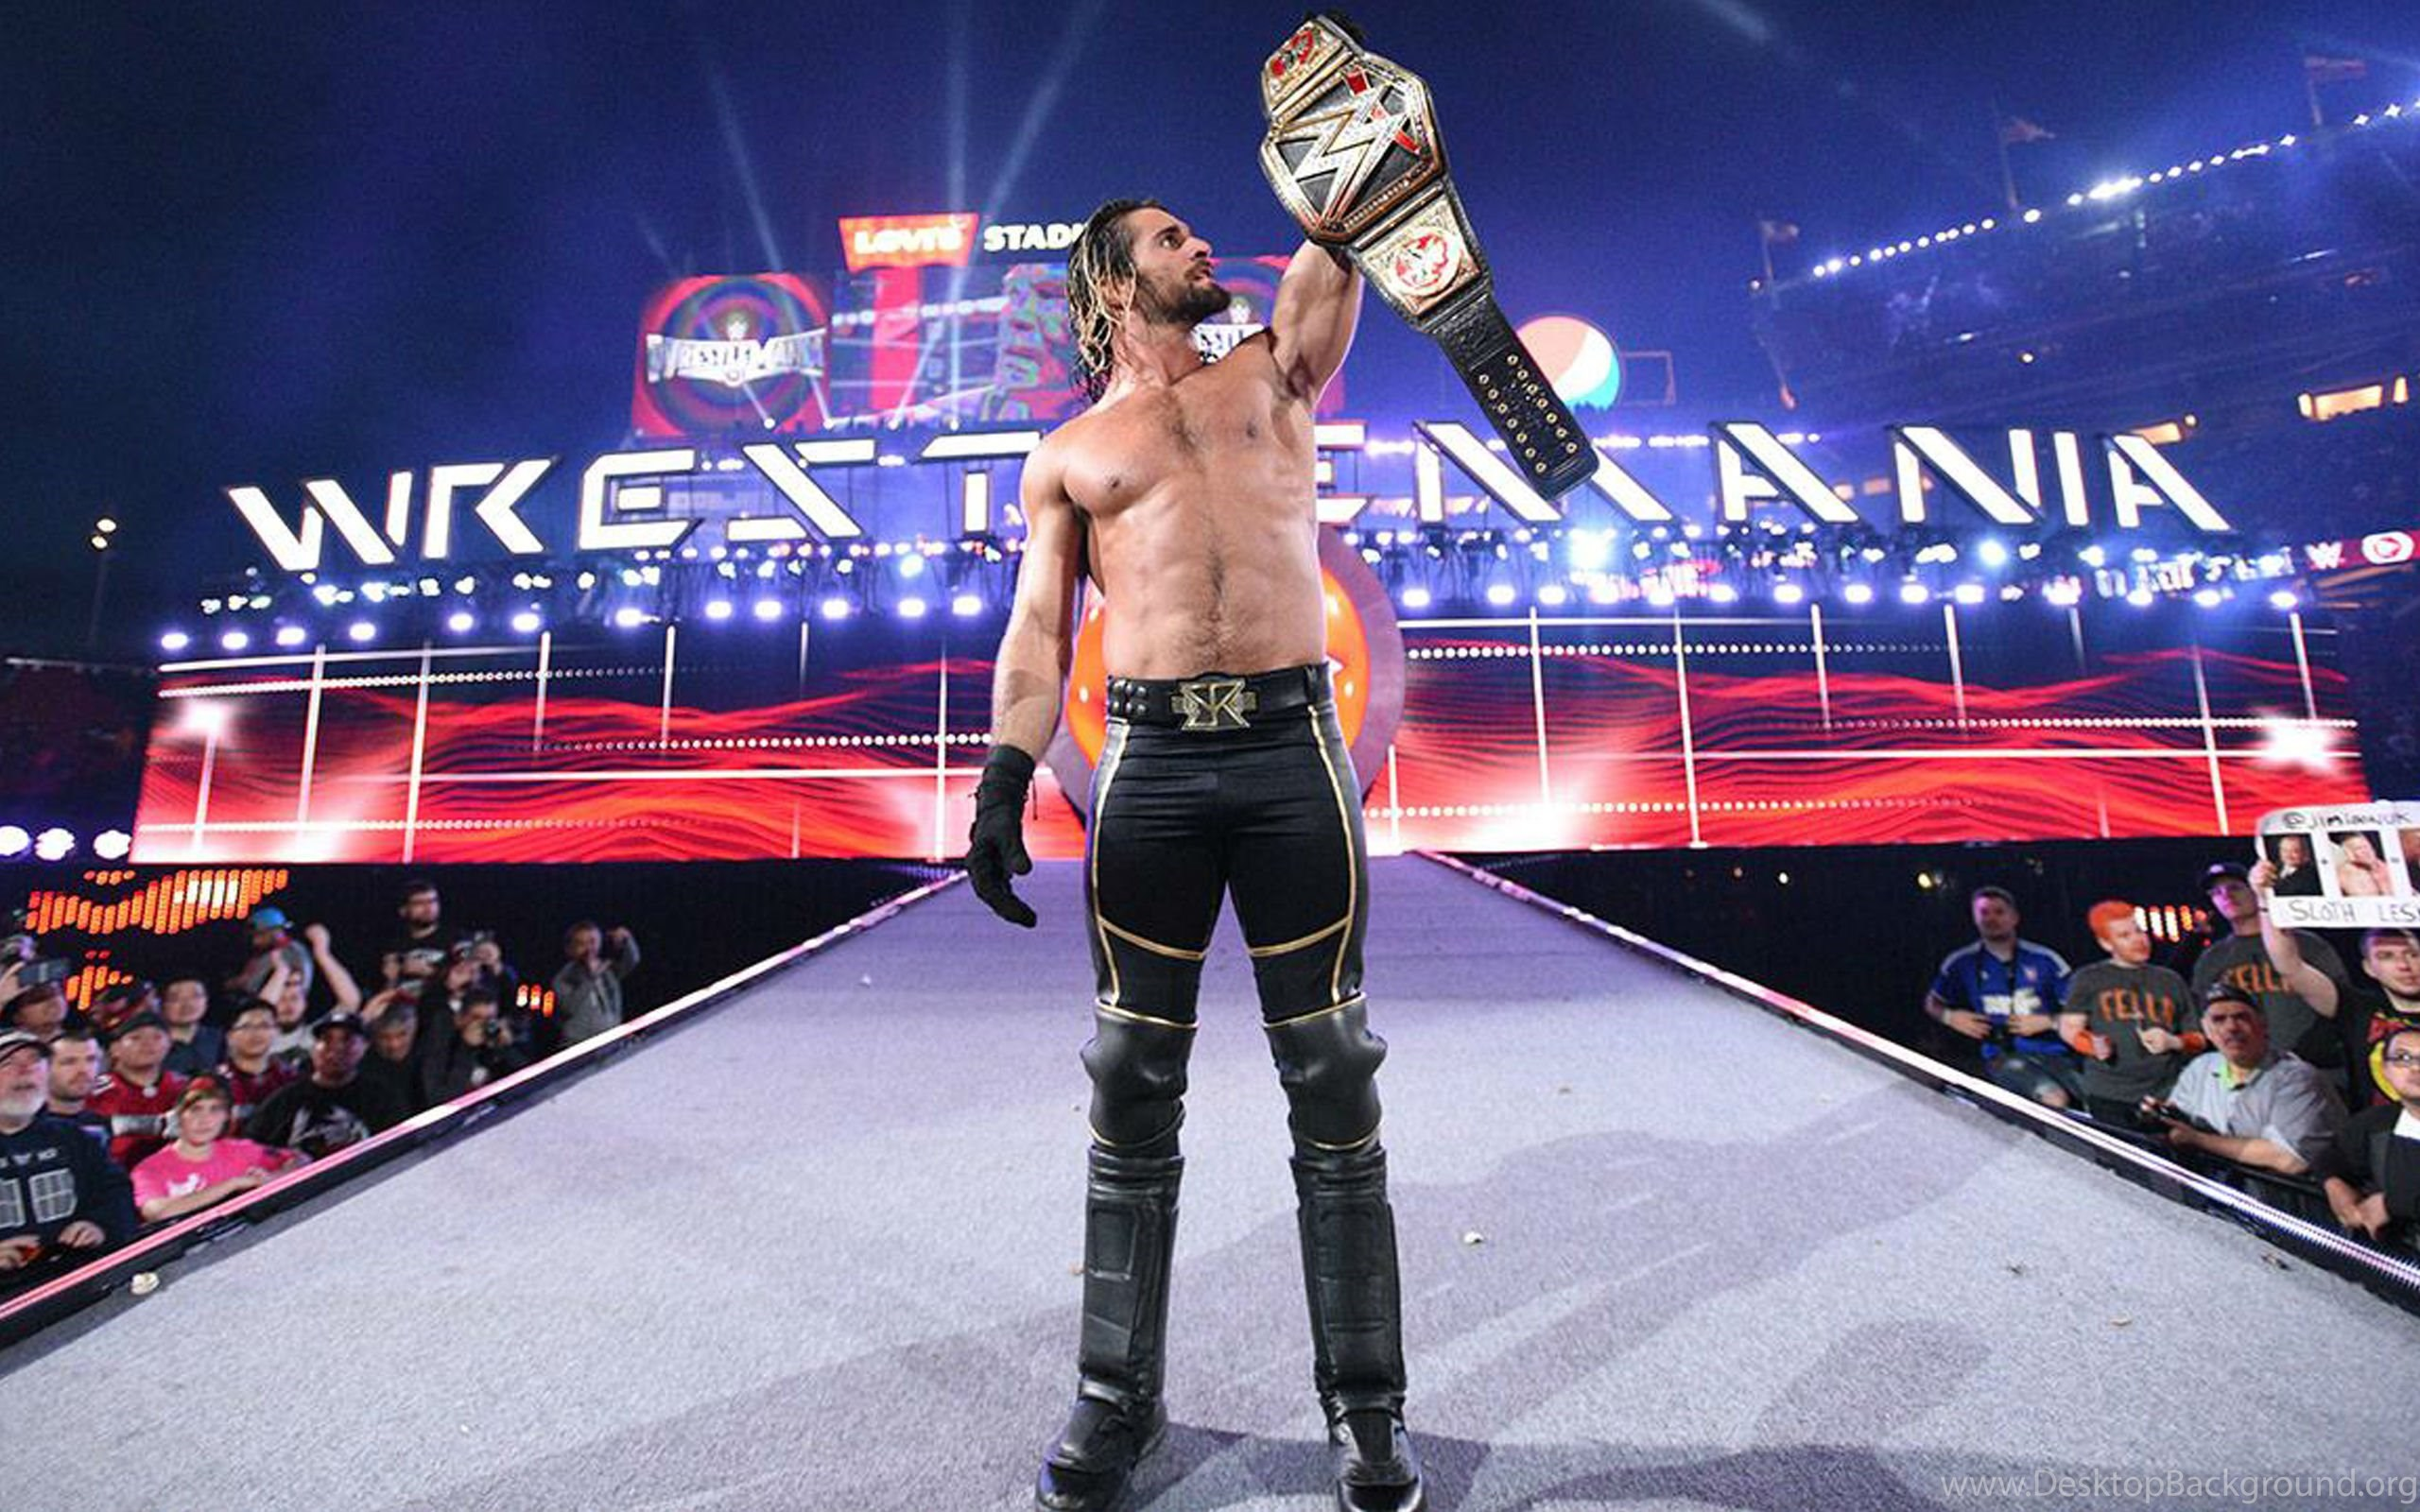 Wwe Champion Seth Rollins Hd Wallpapers Desktop Background